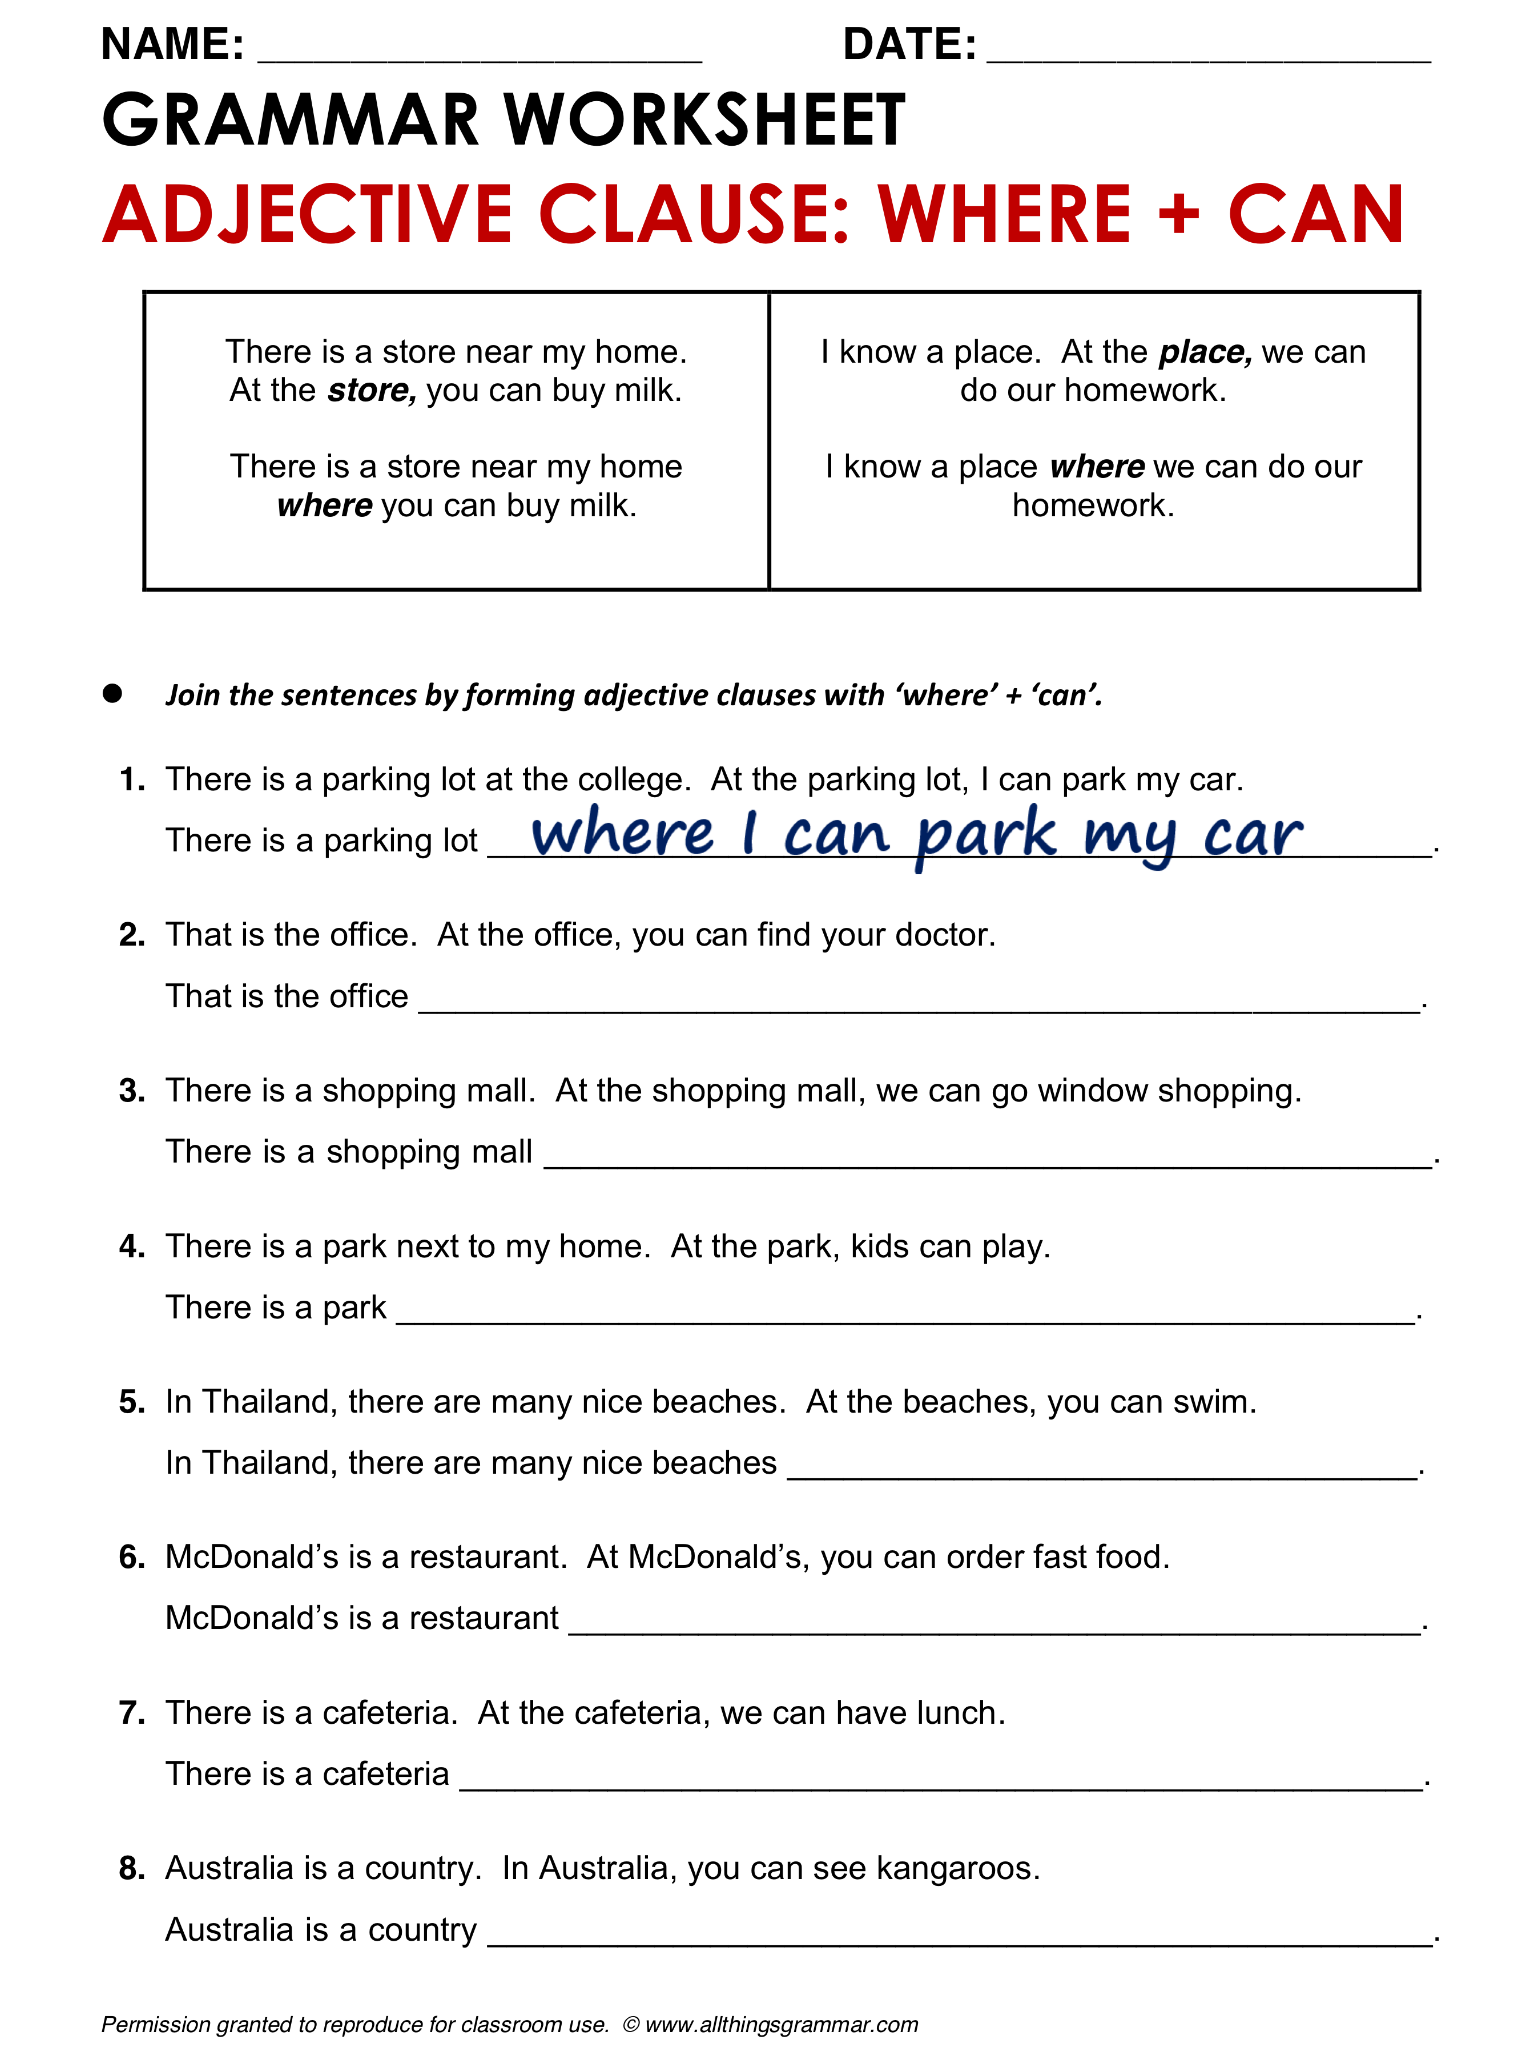 Finding Adjective Clauses Worksheet | Places to Visit | Pinterest ...